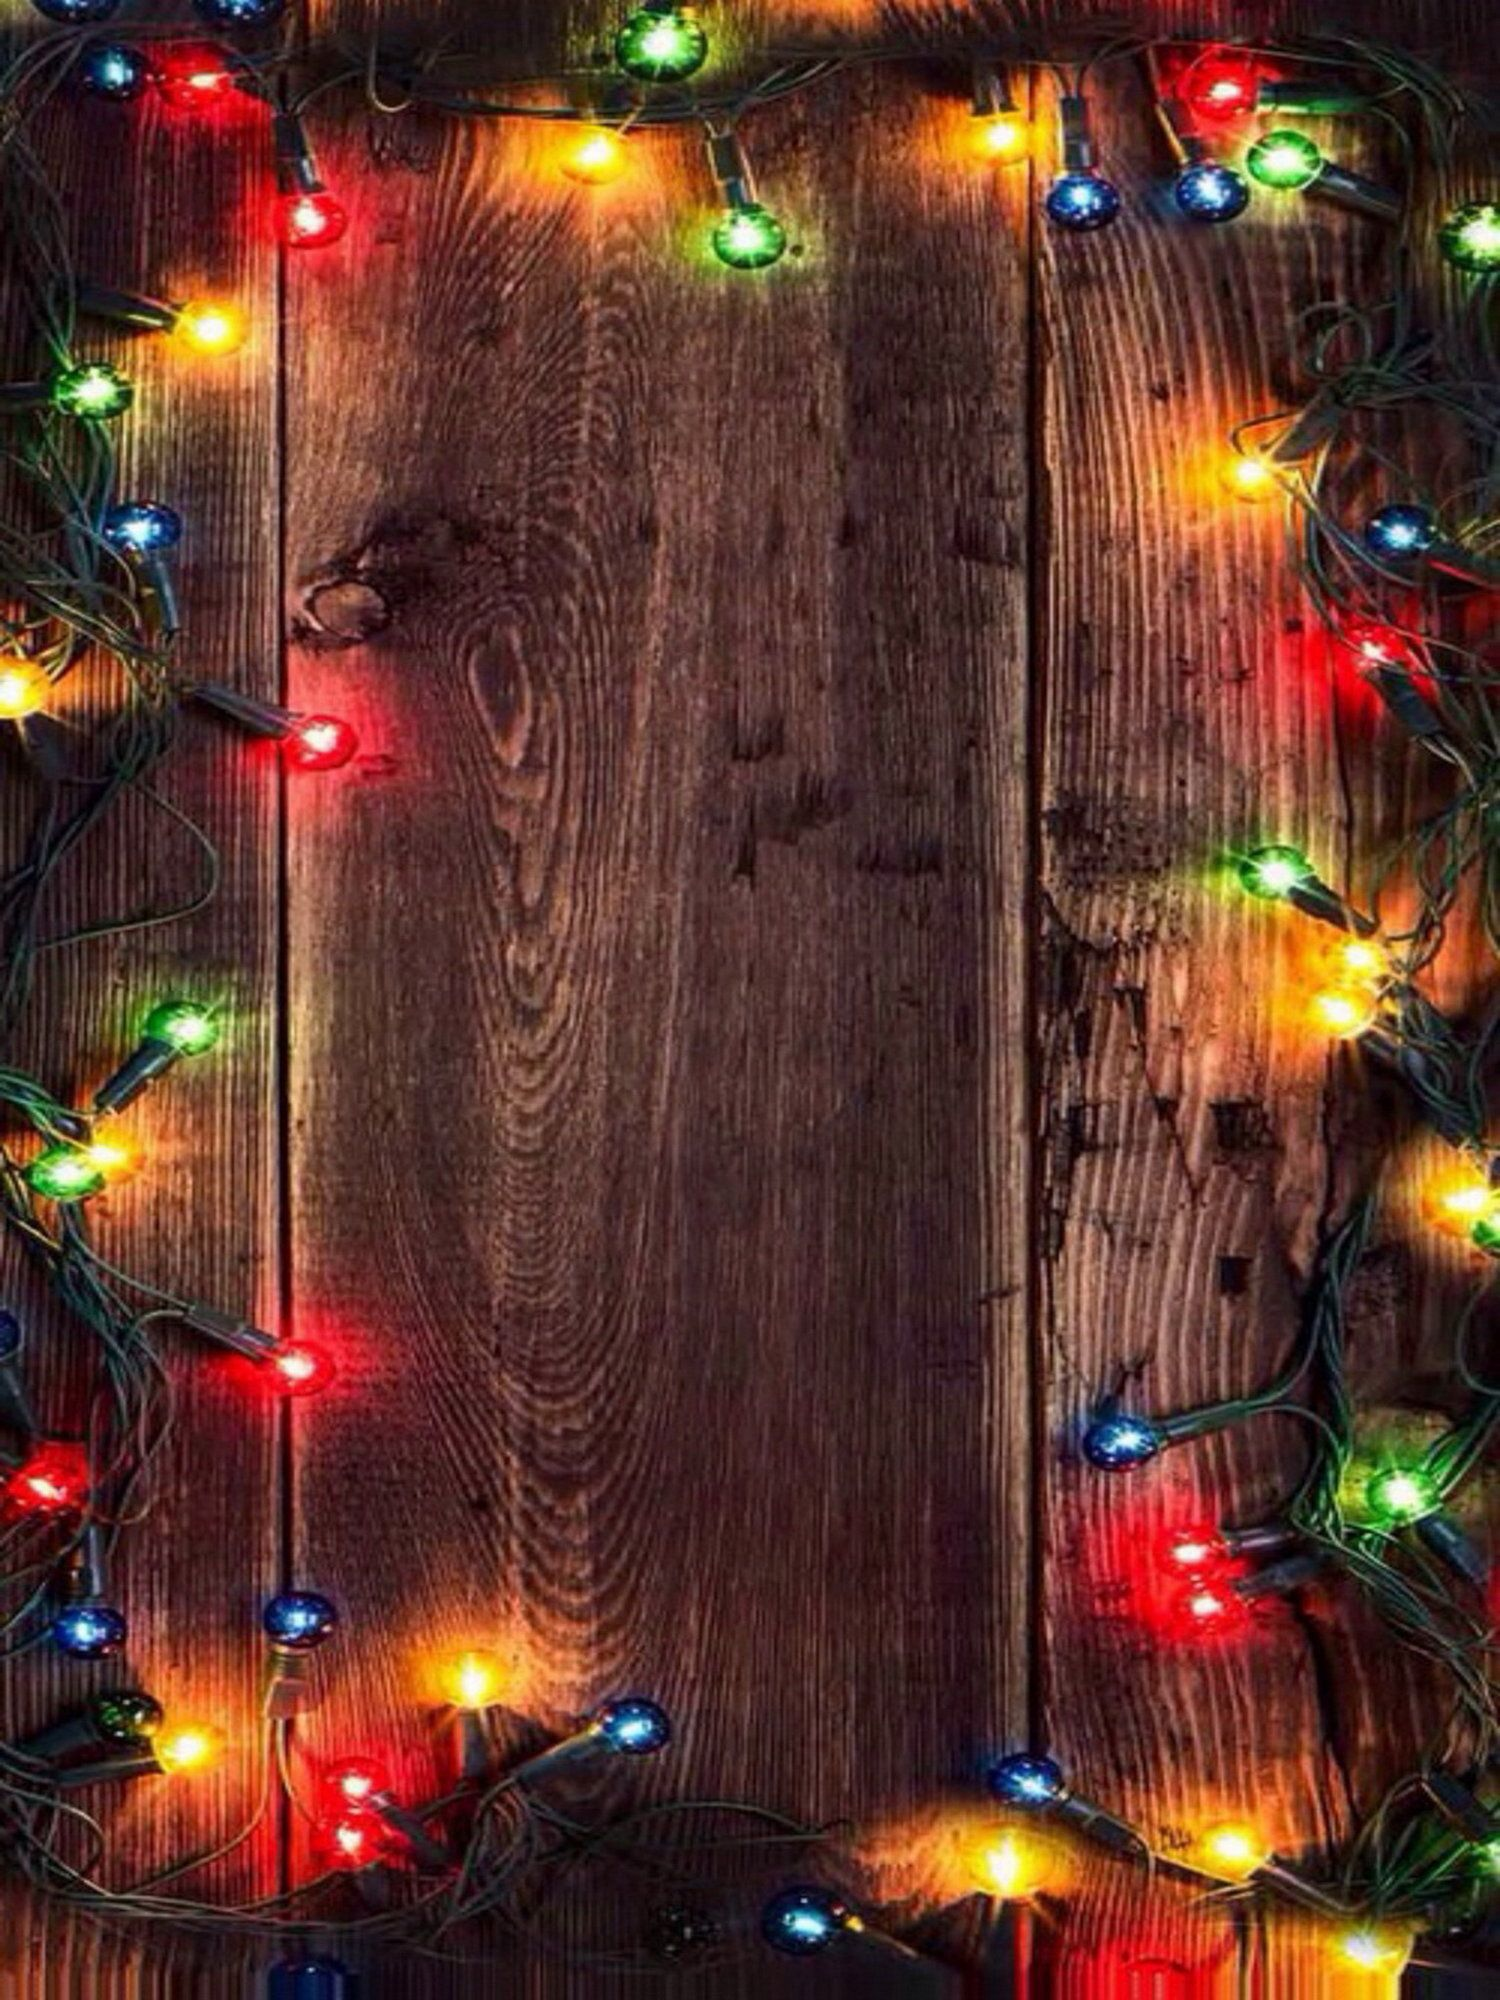 100 magical hd christmas wallpapers christmas wallpaper 100 magical hd christmas wallpapers voltagebd Image collections